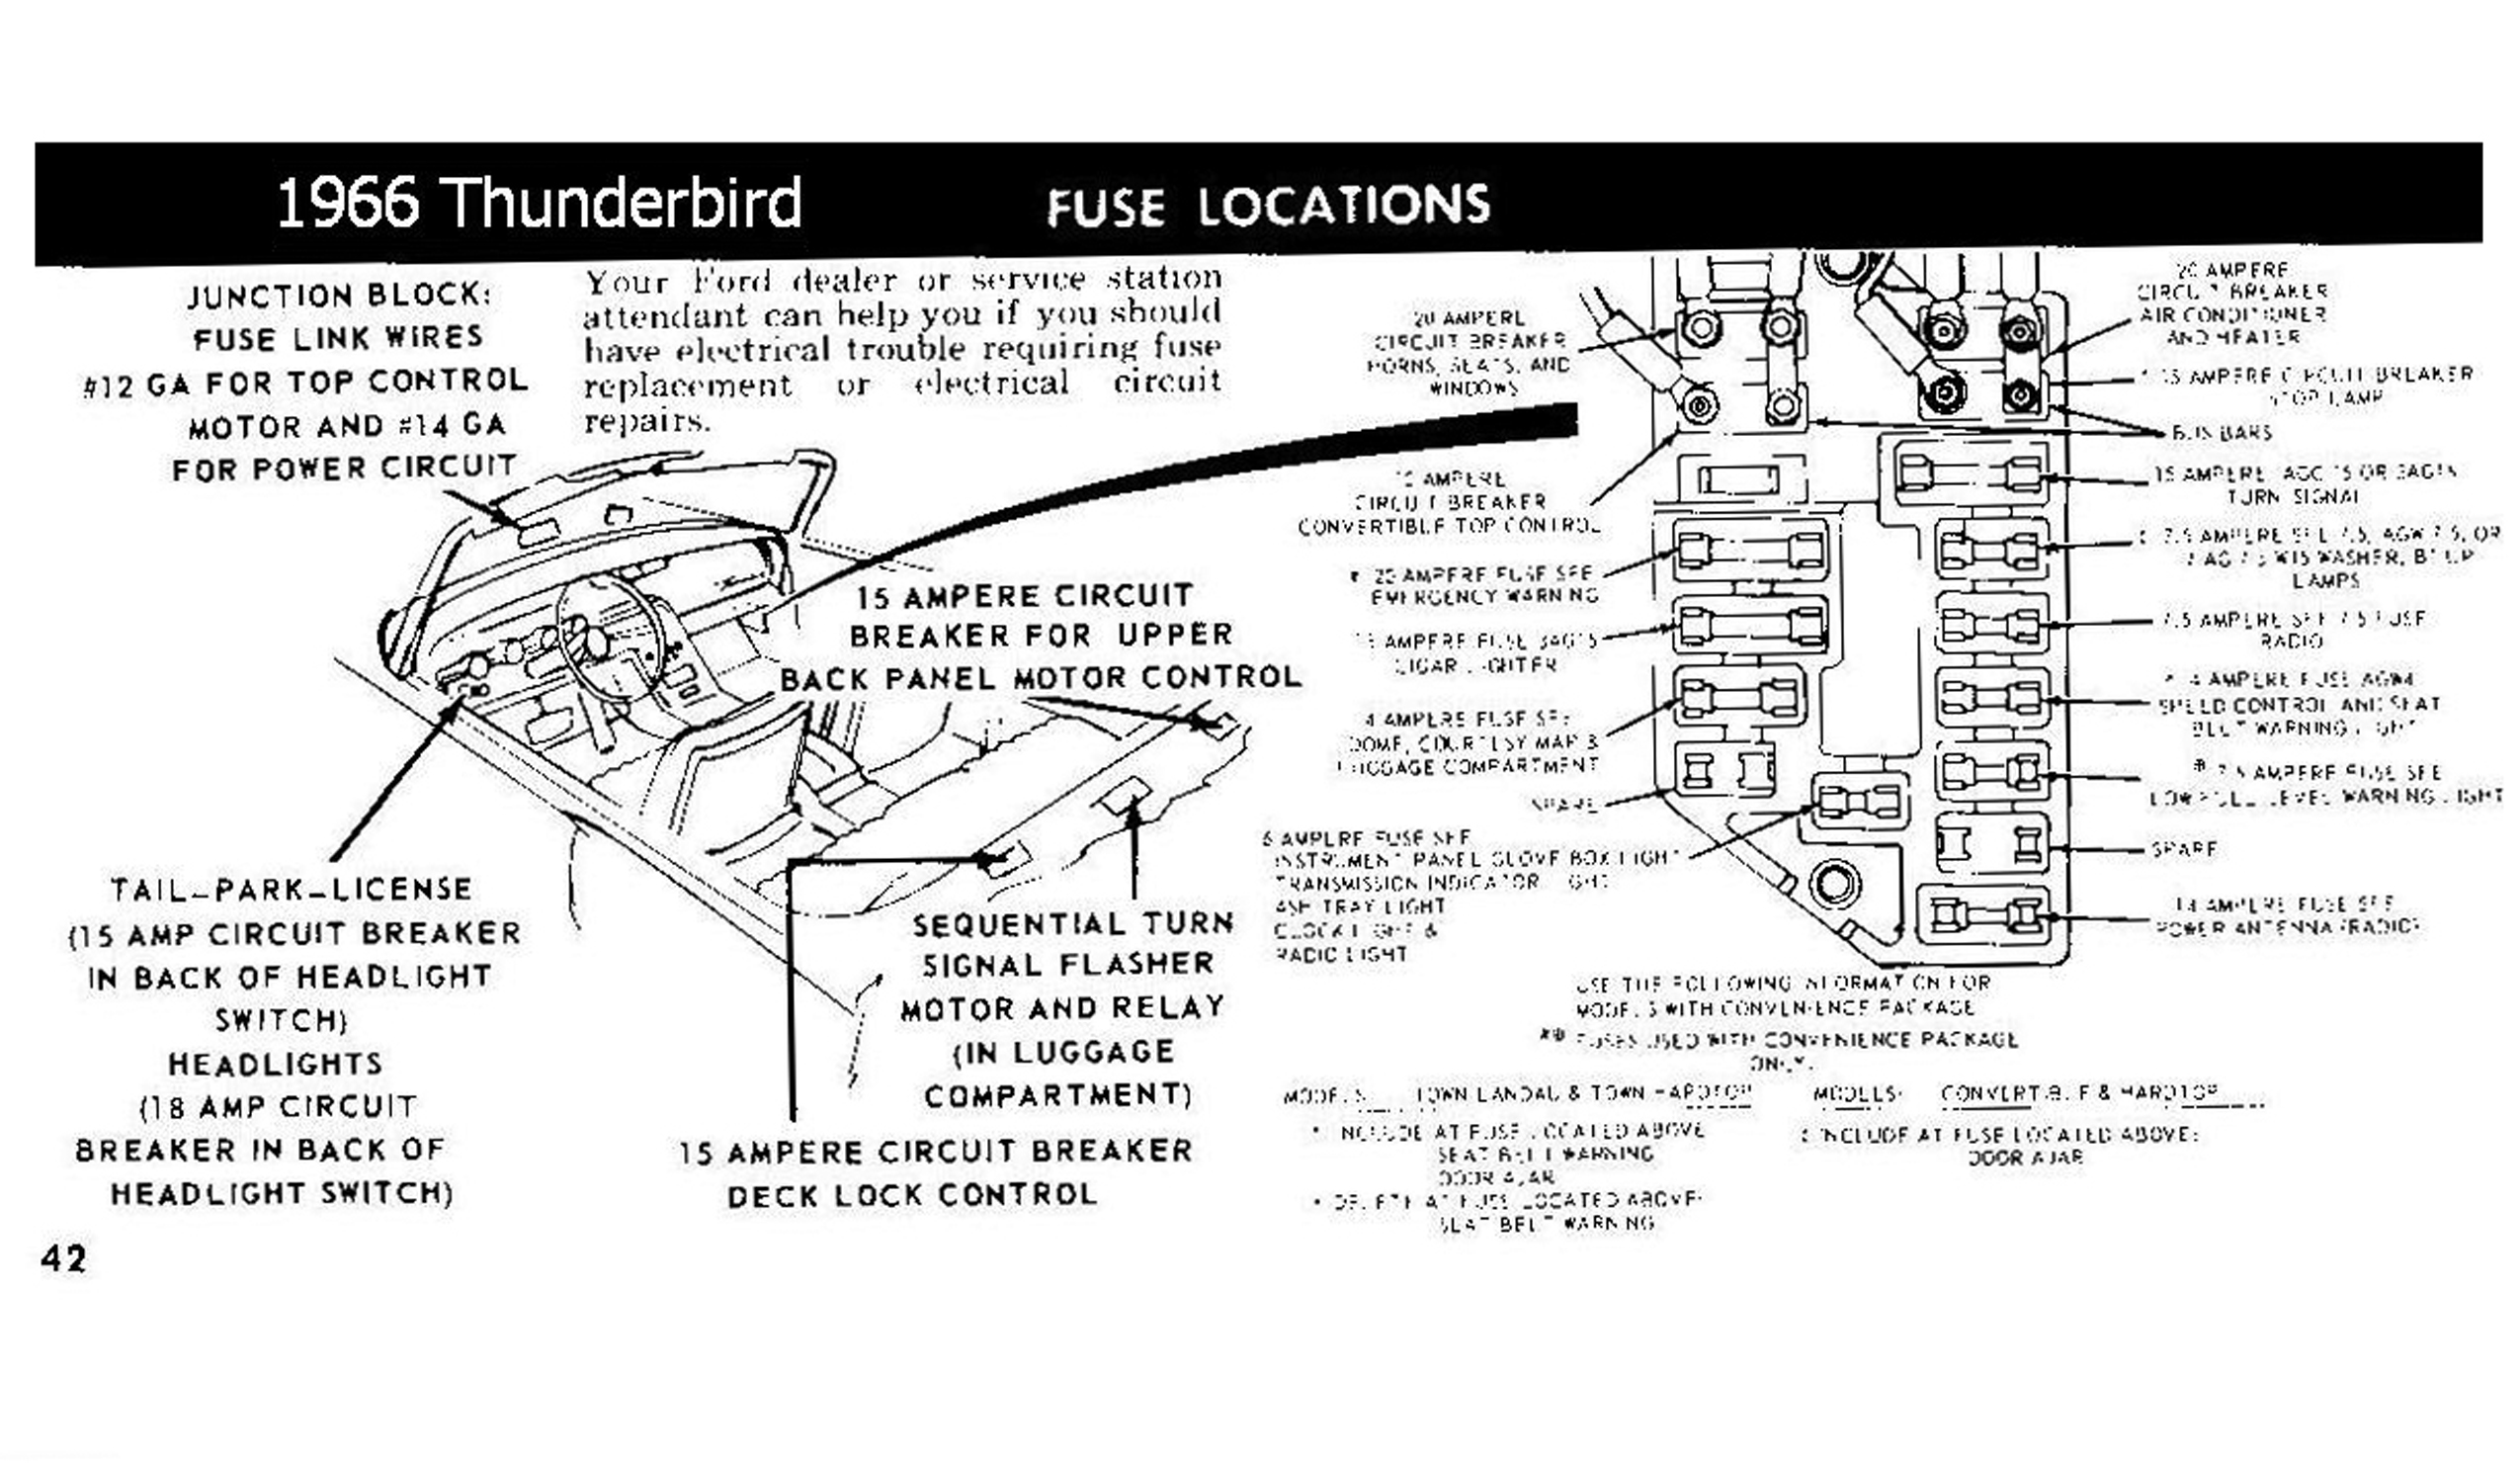 66TbirdFuseLocations 1958 68 ford electrical schematics 1965 Thunderbird Window Regulator at virtualis.co